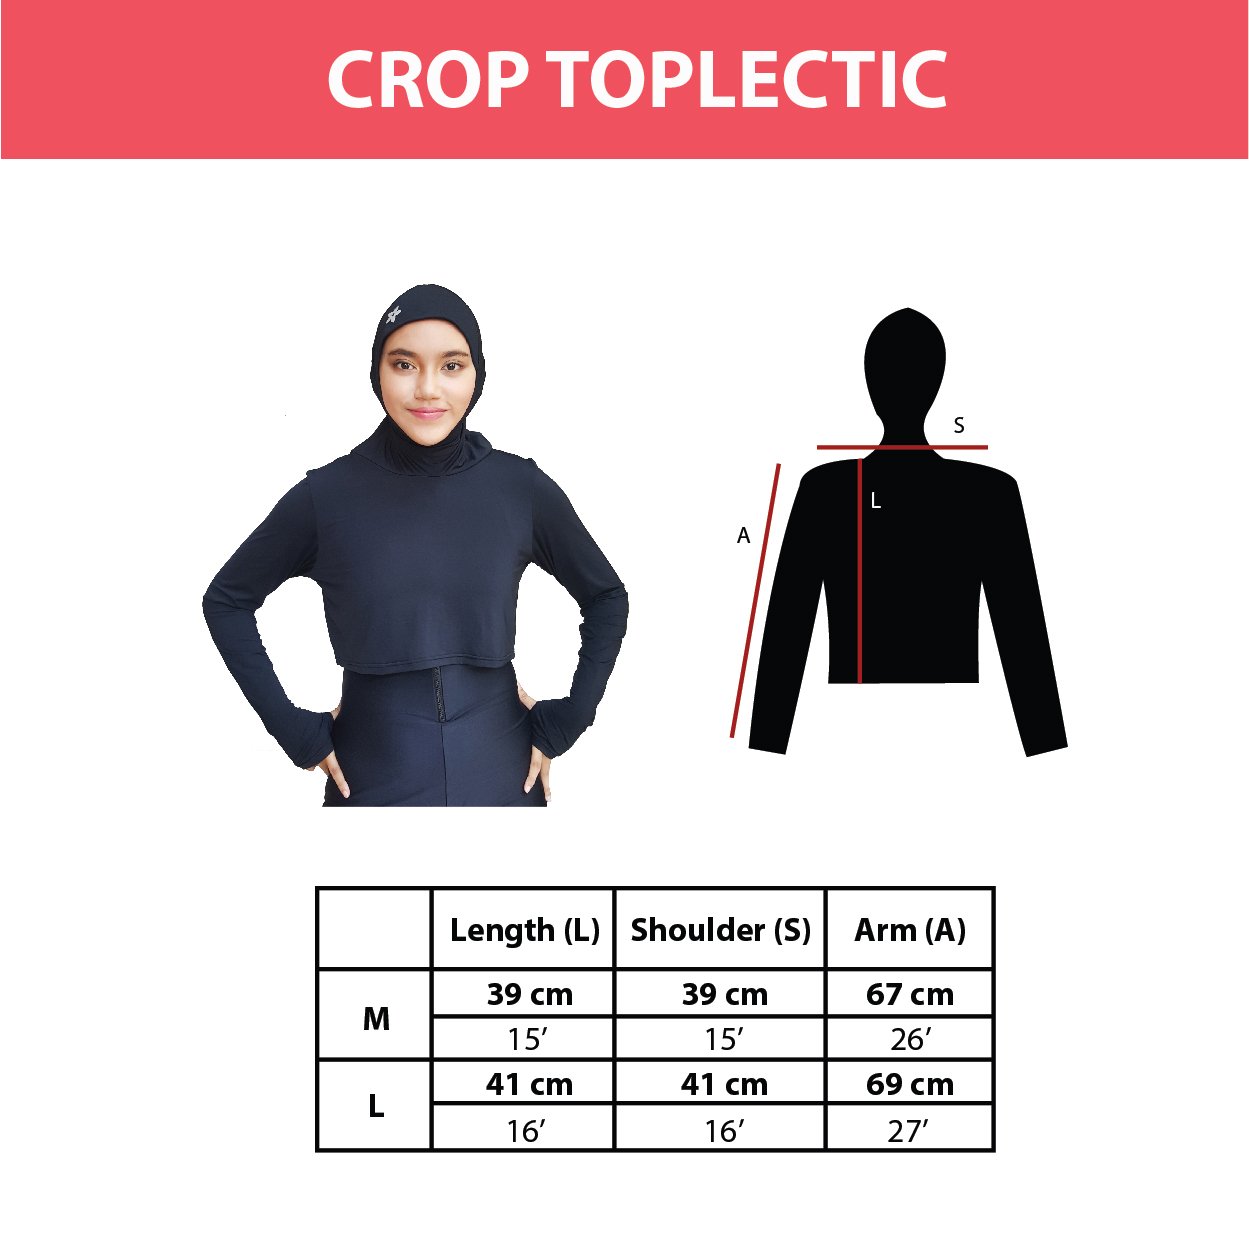 Nashata Crop Toplectic Measurement